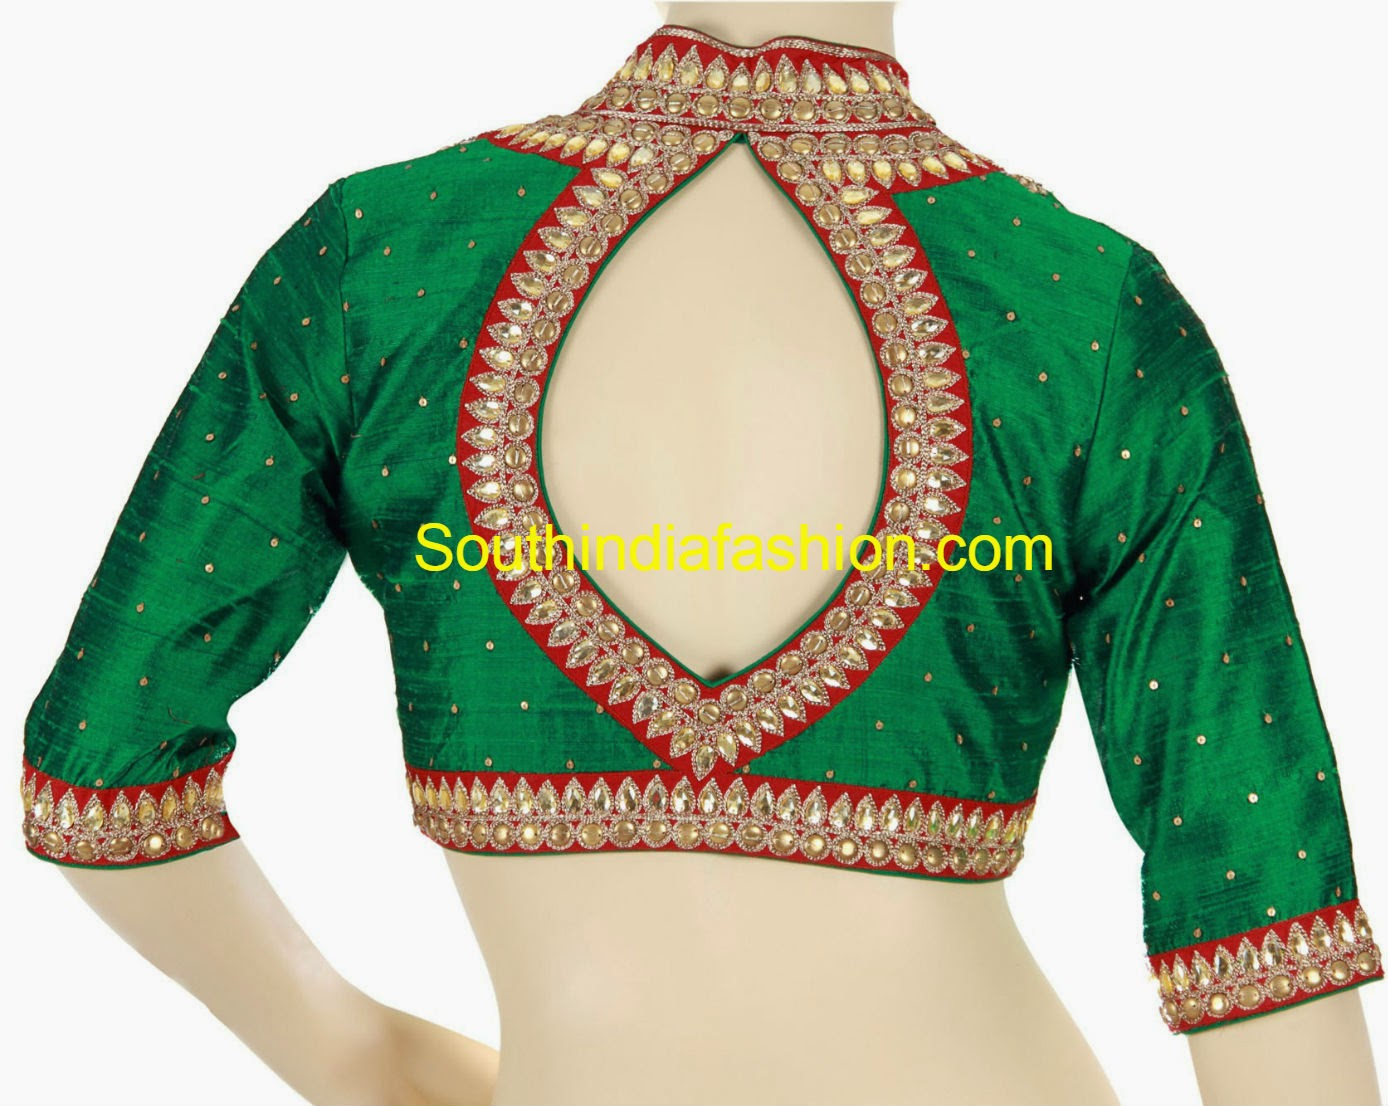 Stand Collar Neck Designs For Blouse : Moved permanently